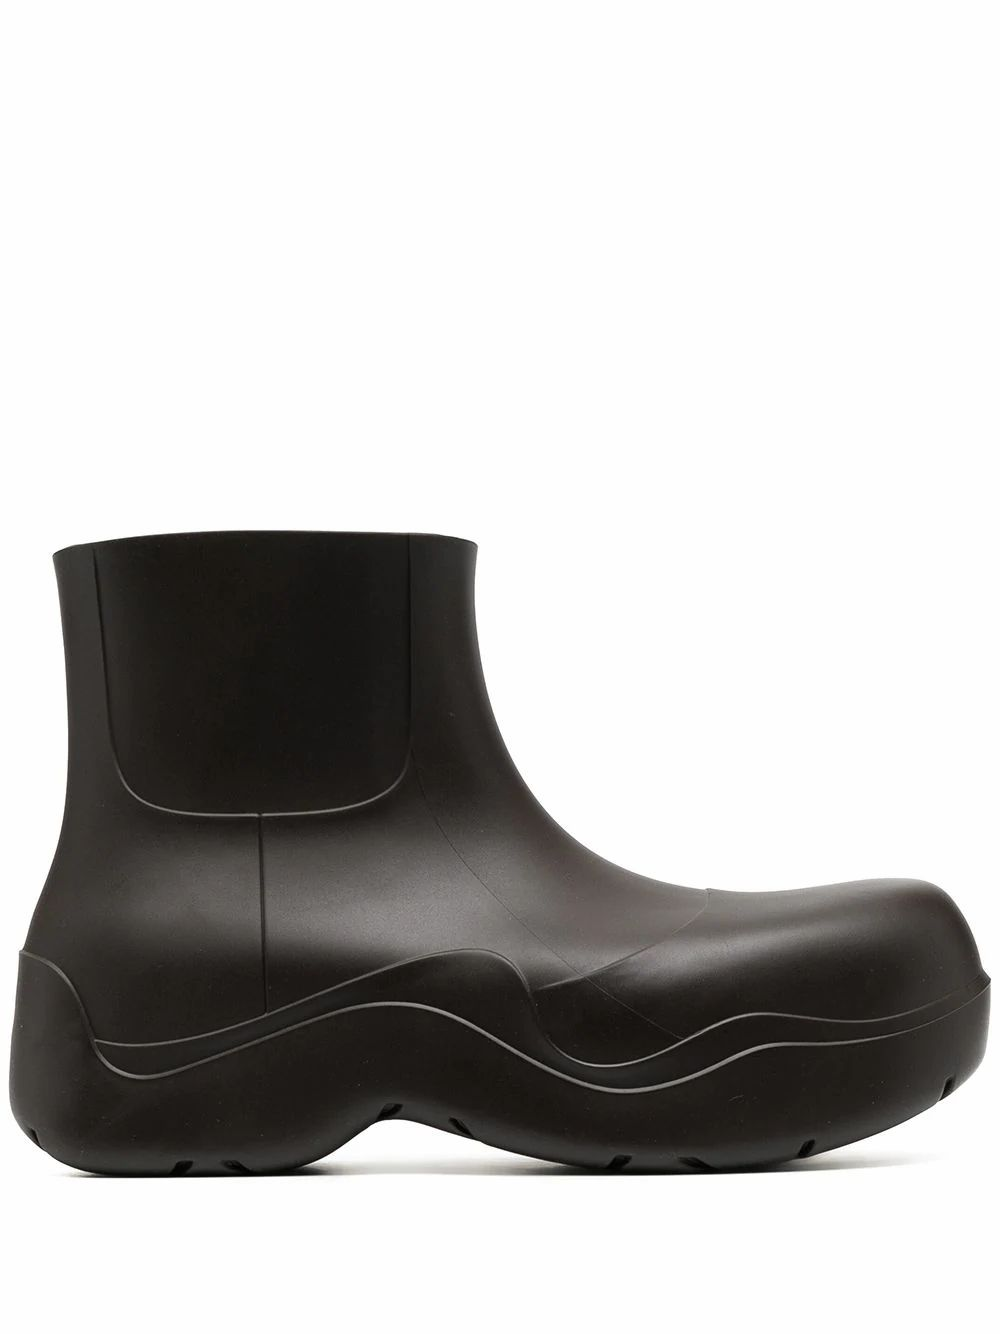 BOTTEGA VENETA BOTTEGA VENETA MEN'S BROWN RUBBER ANKLE BOOTS